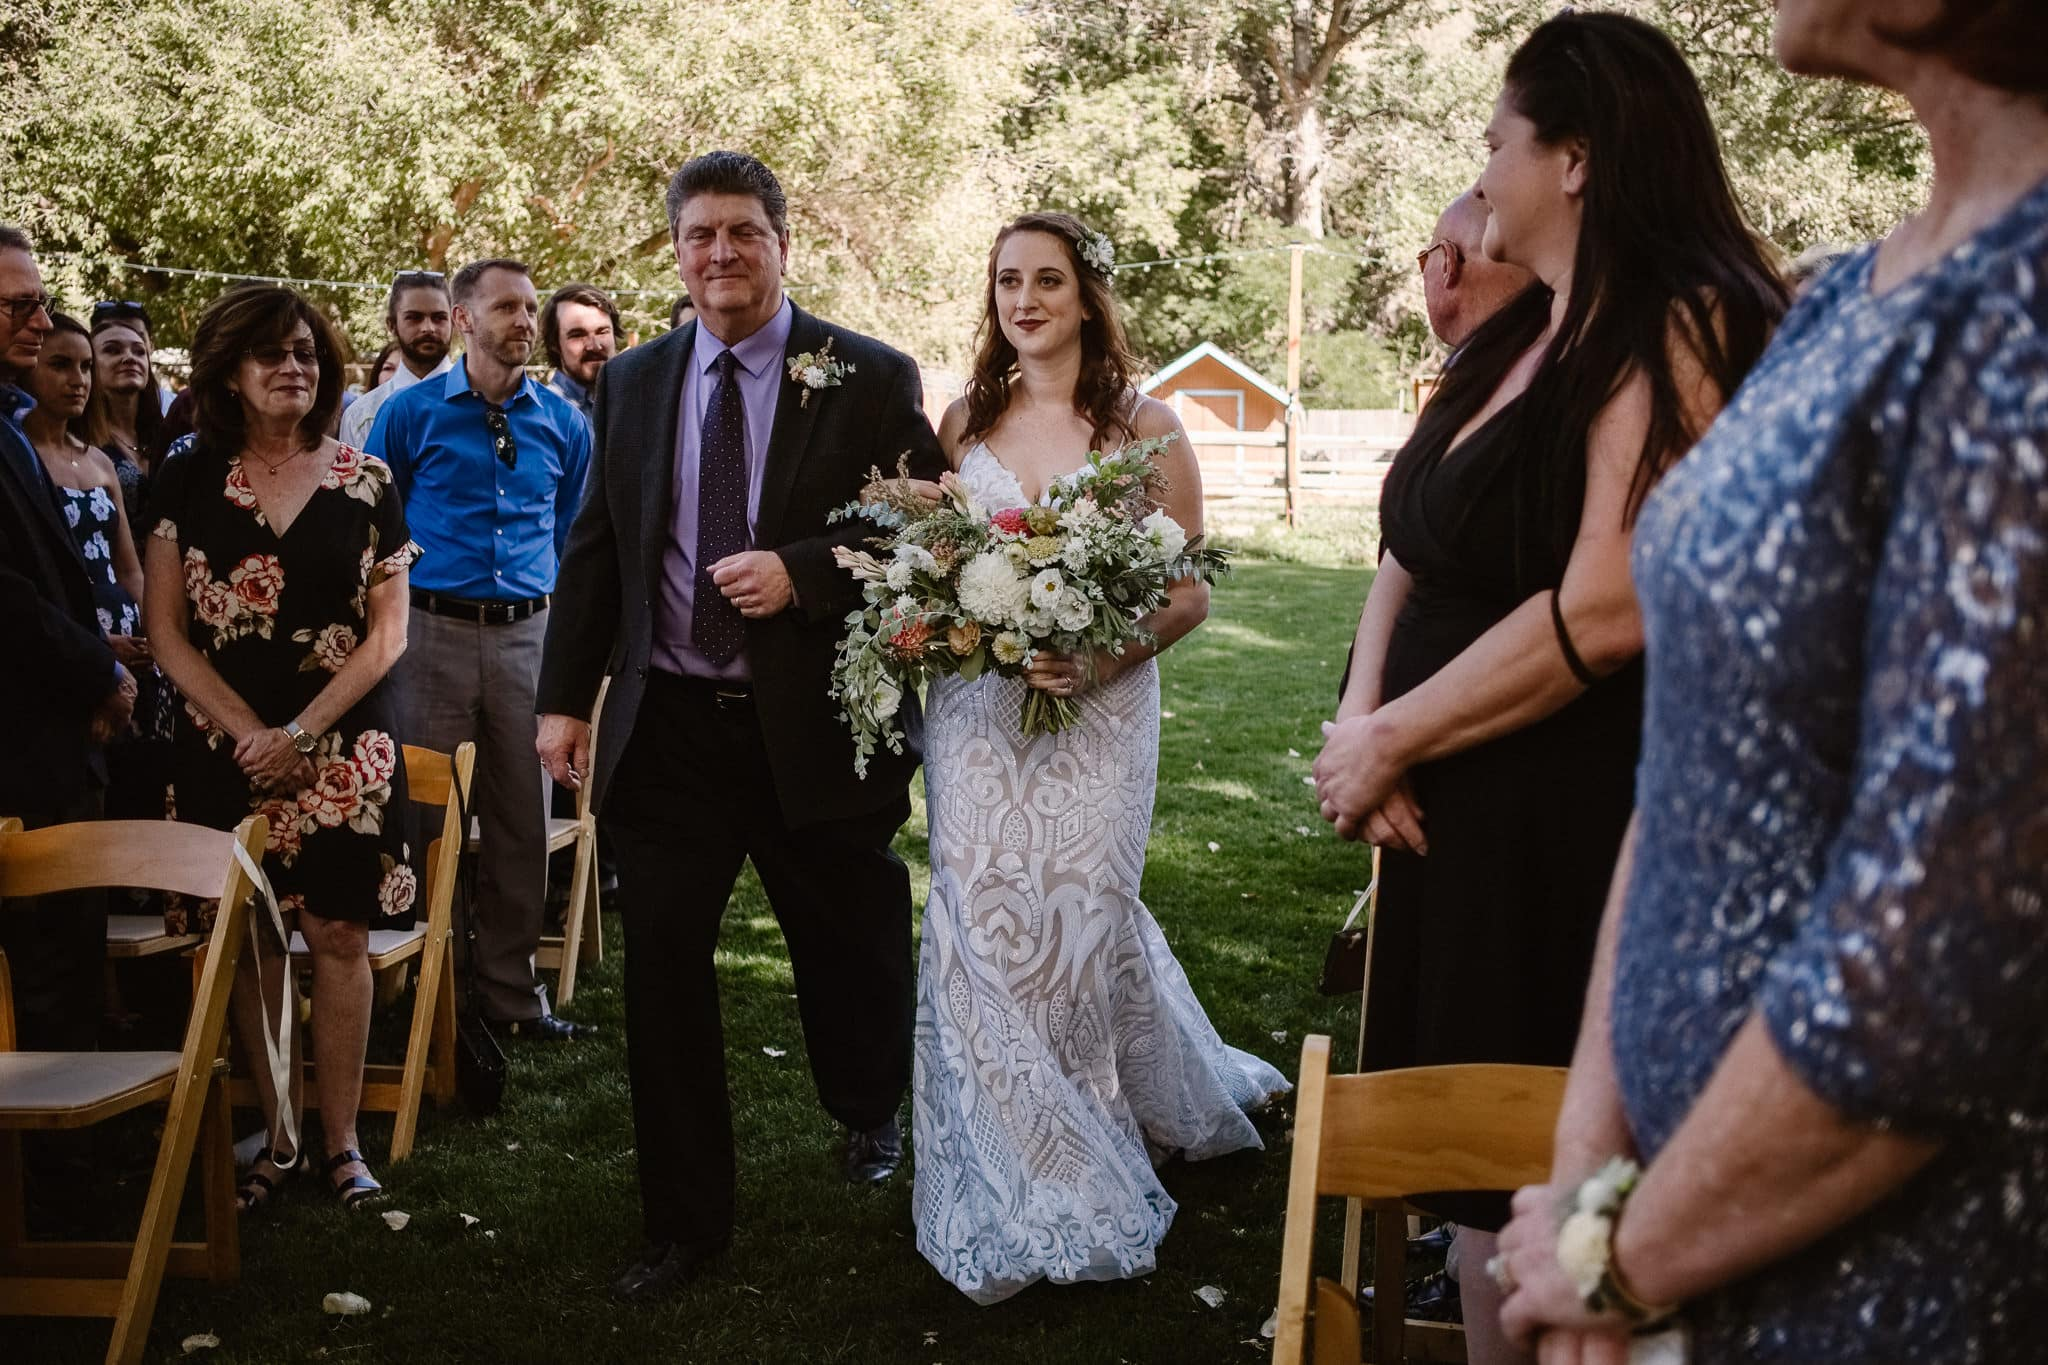 Lyons Farmette wedding photographer, Colorado intimate wedding photographer, wedding ceremony, bride and father walking down aisle